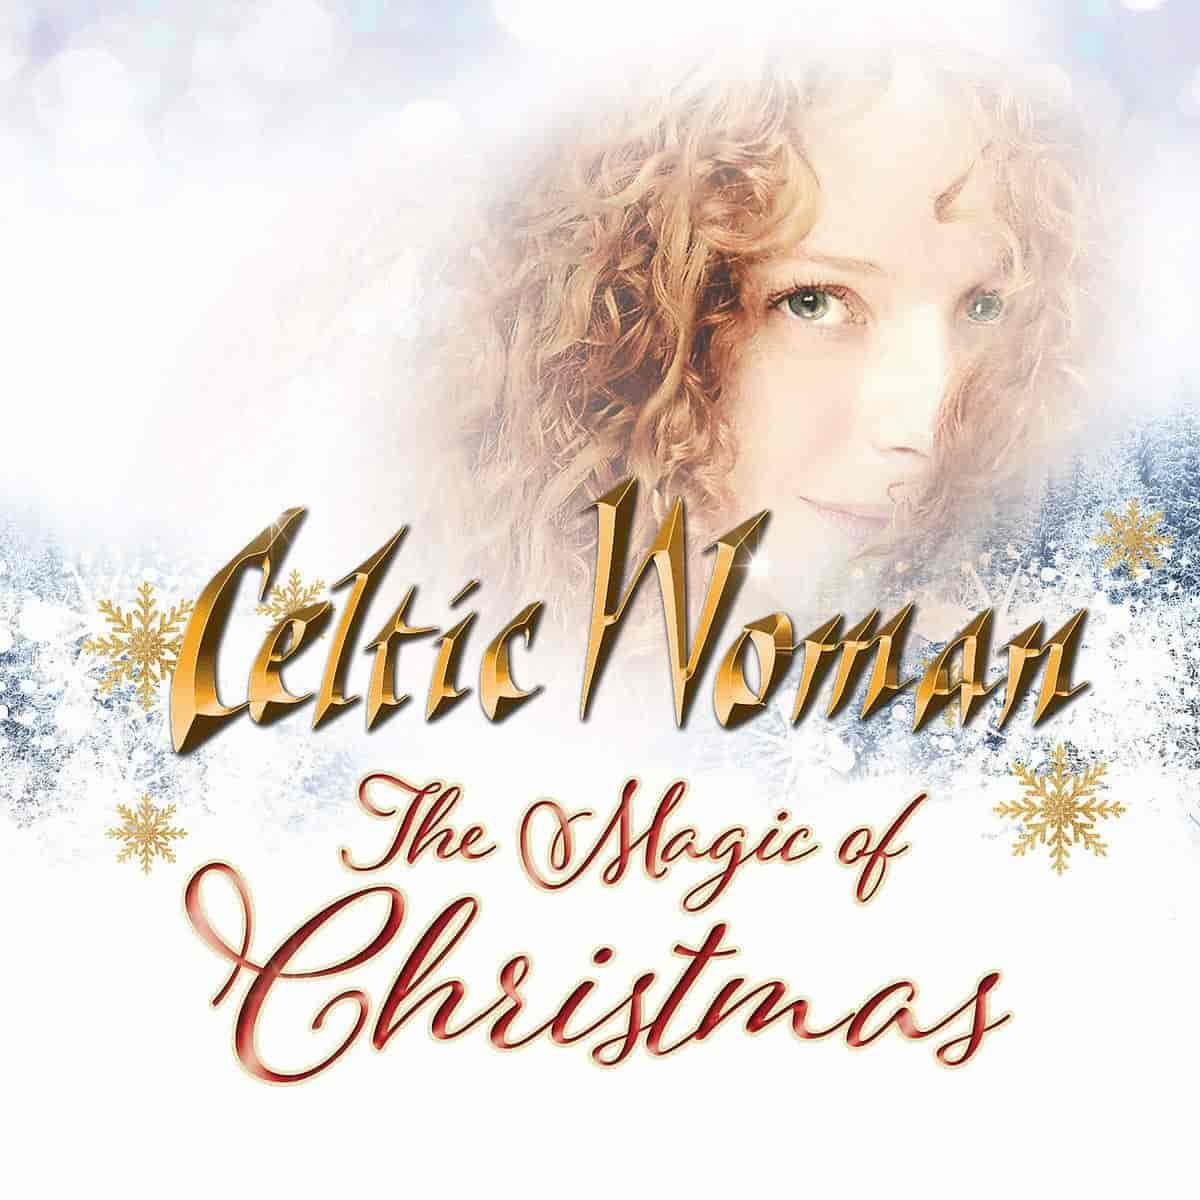 Celtic Woman - Weihnachtsalbum The Magic of Christmas